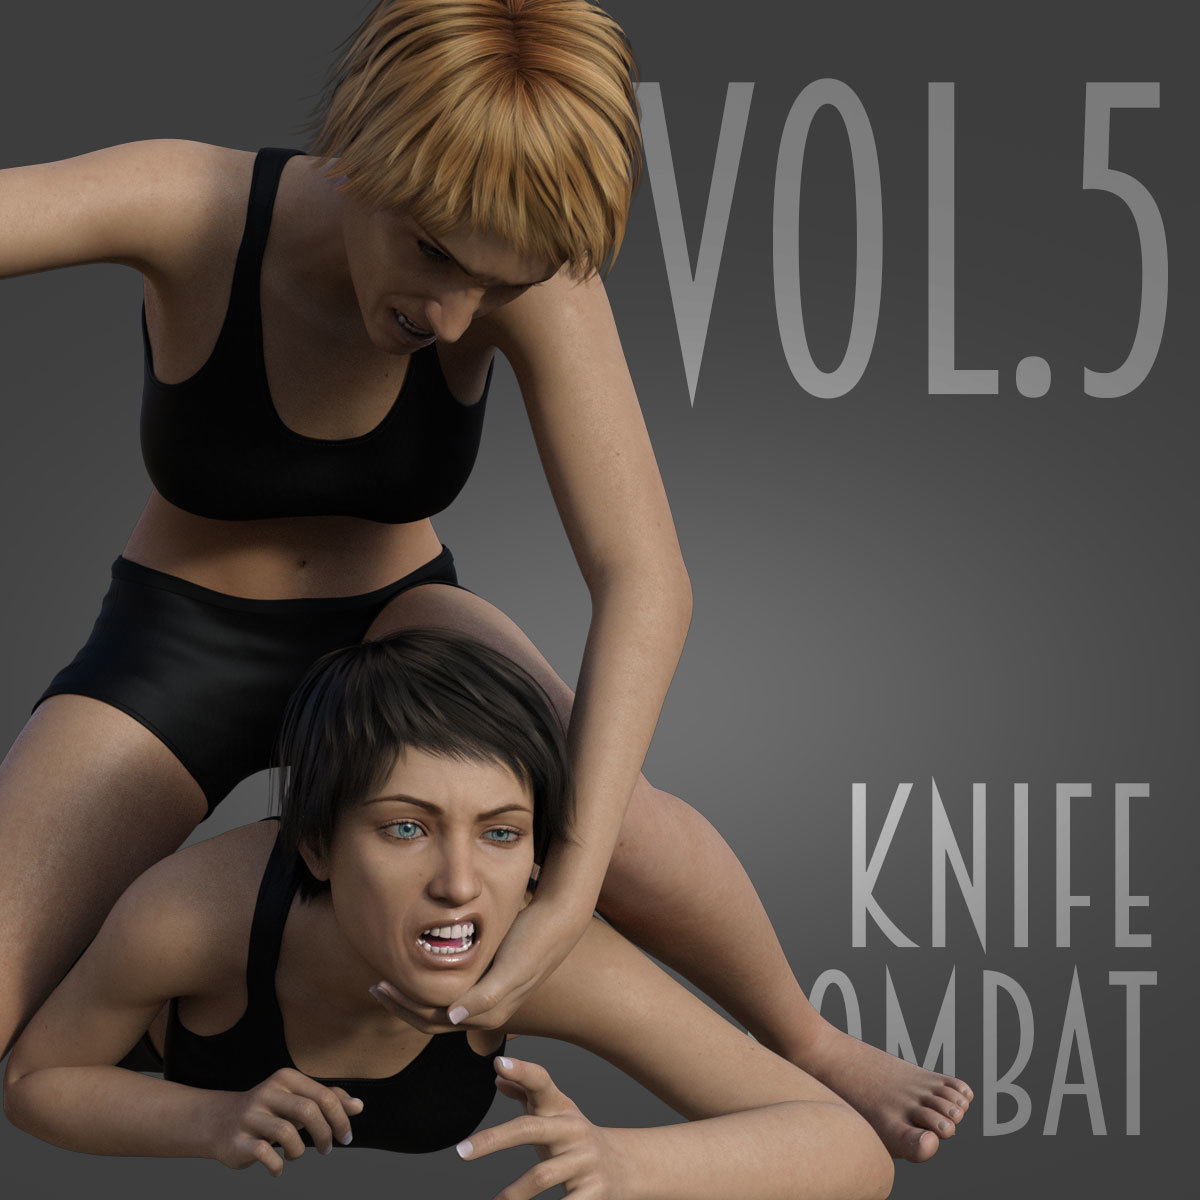 Knife Combat vol.5 for Genesis 8 Female by PainMD